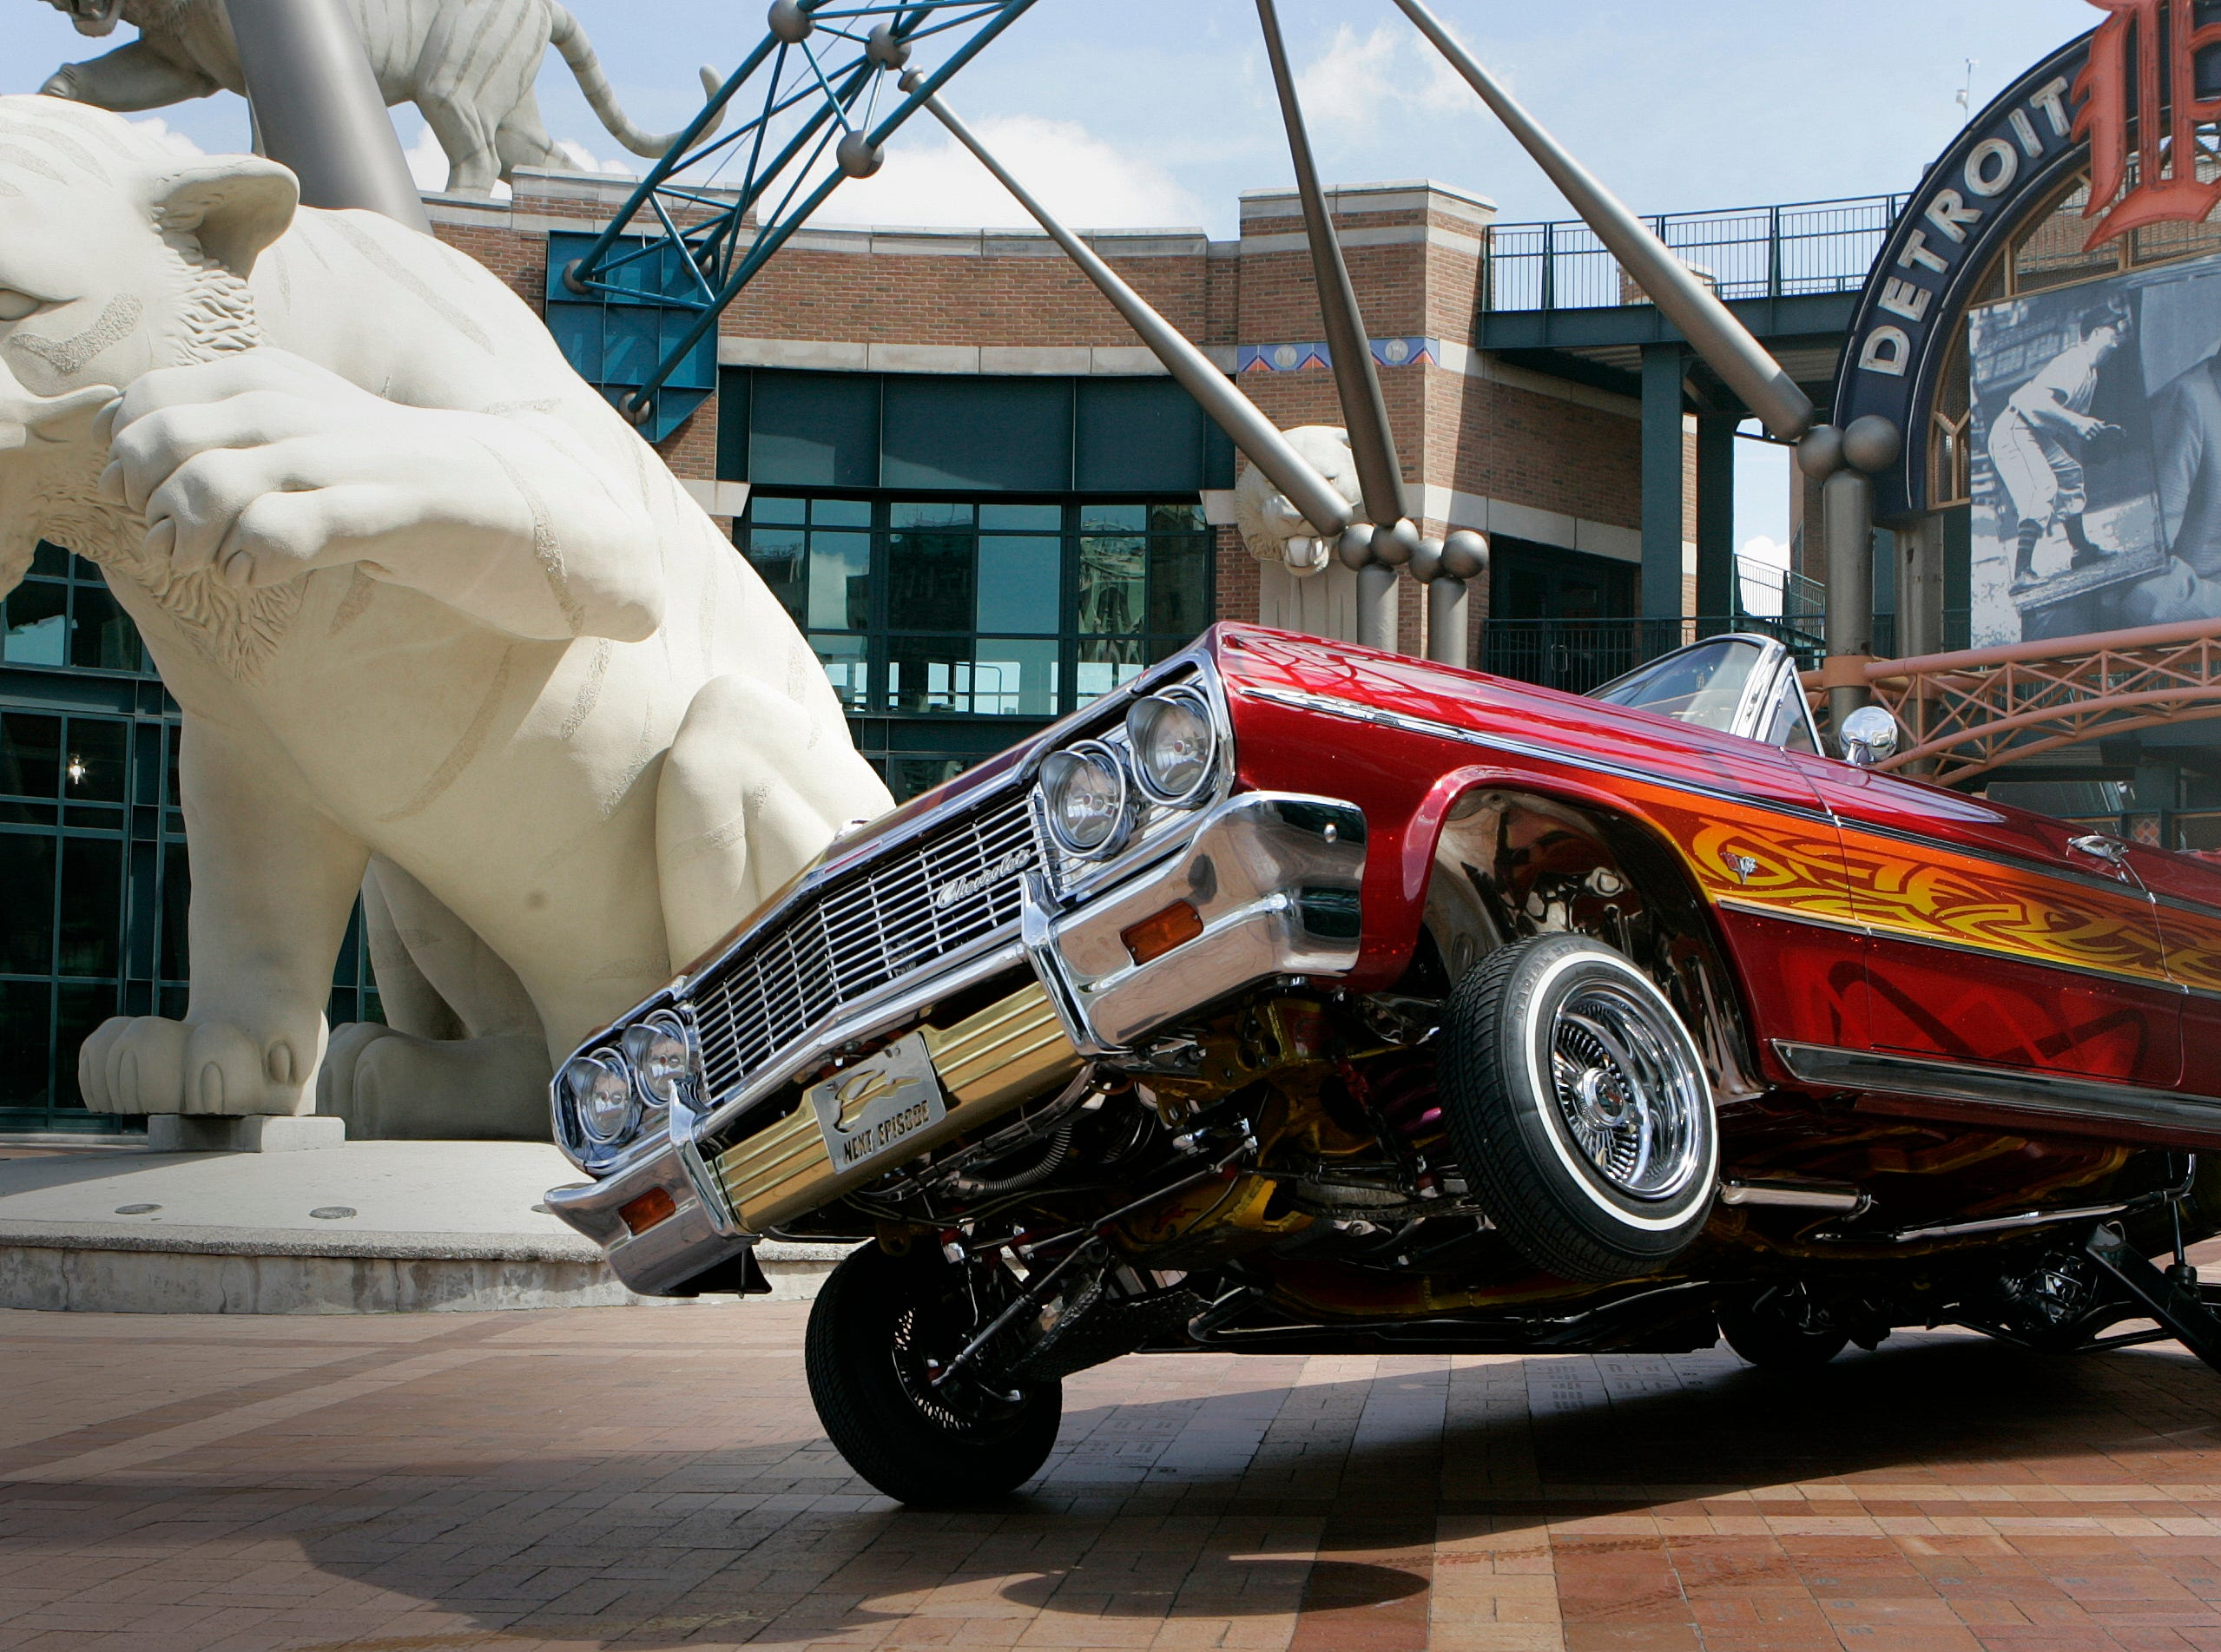 A 1964 Chevy Impala, owned by Thomas Cavataio of Grosse Pointe Woods, outside Comerica Park in Detroit, June 24, 2008.